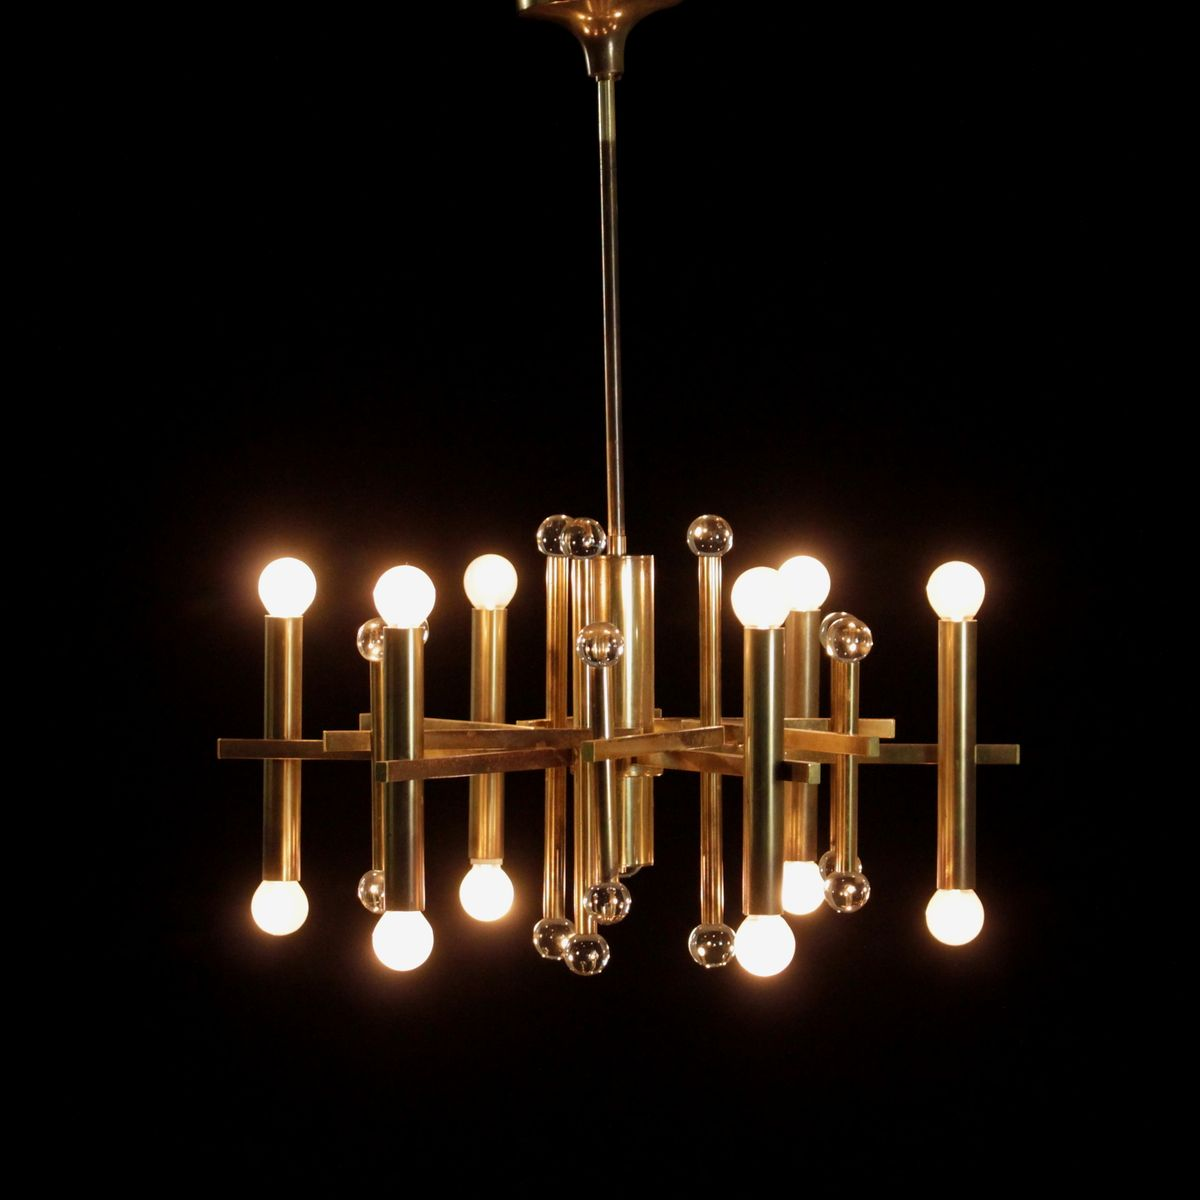 chandelier vintage en laiton verre italie 1960s en vente sur pamono. Black Bedroom Furniture Sets. Home Design Ideas